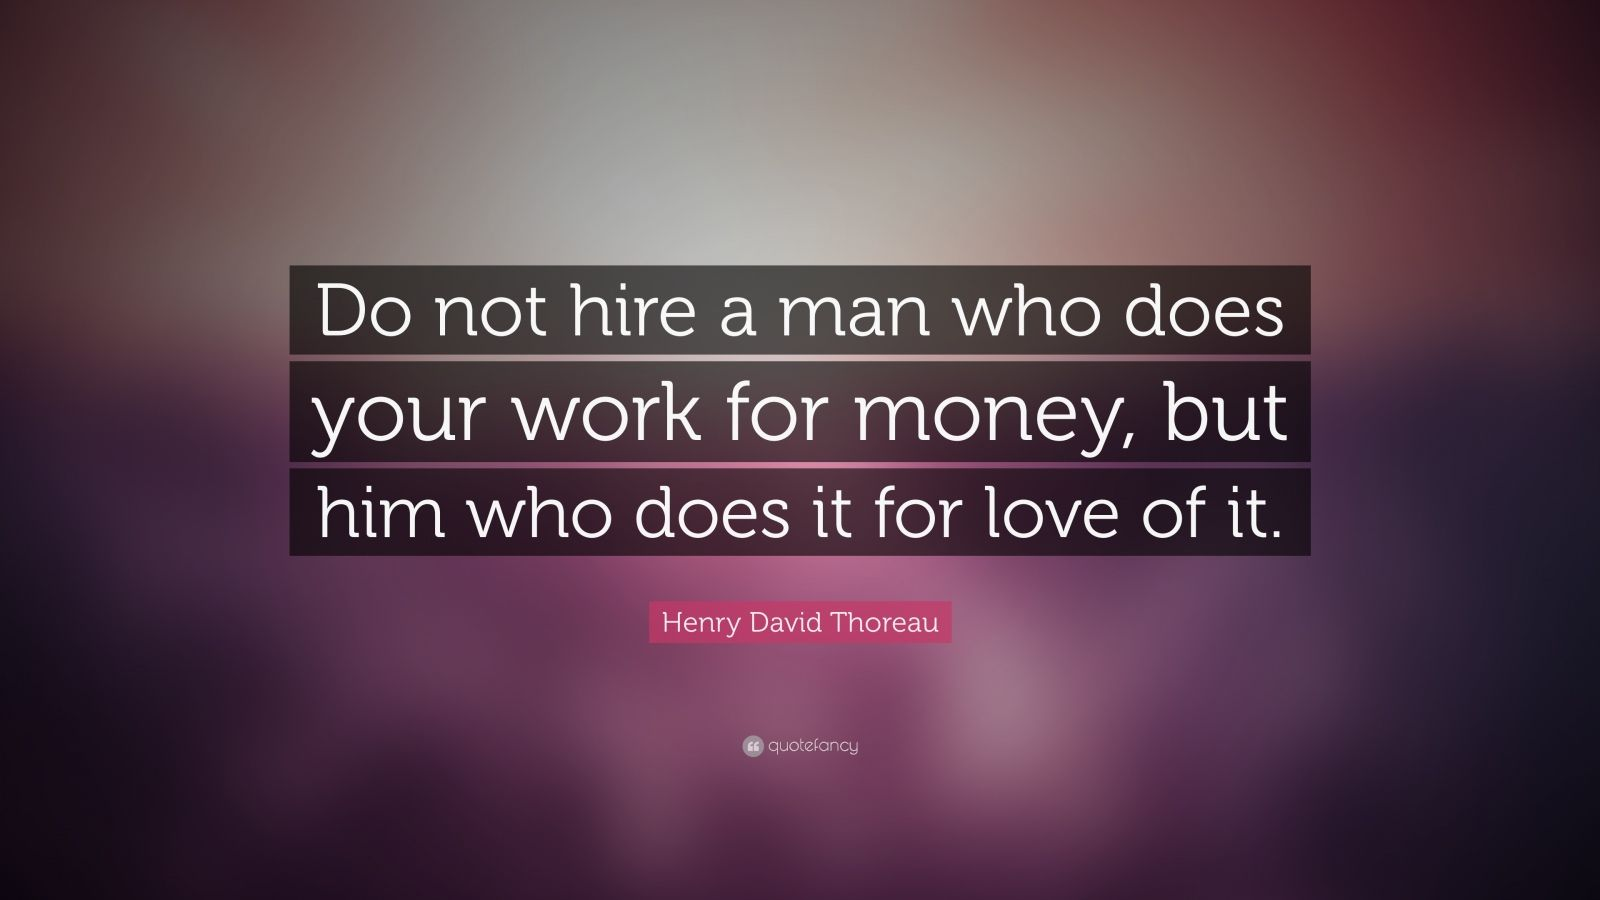 henry david thoreau quotes quotefancy henry david thoreau quote do not hire a man who does your work for